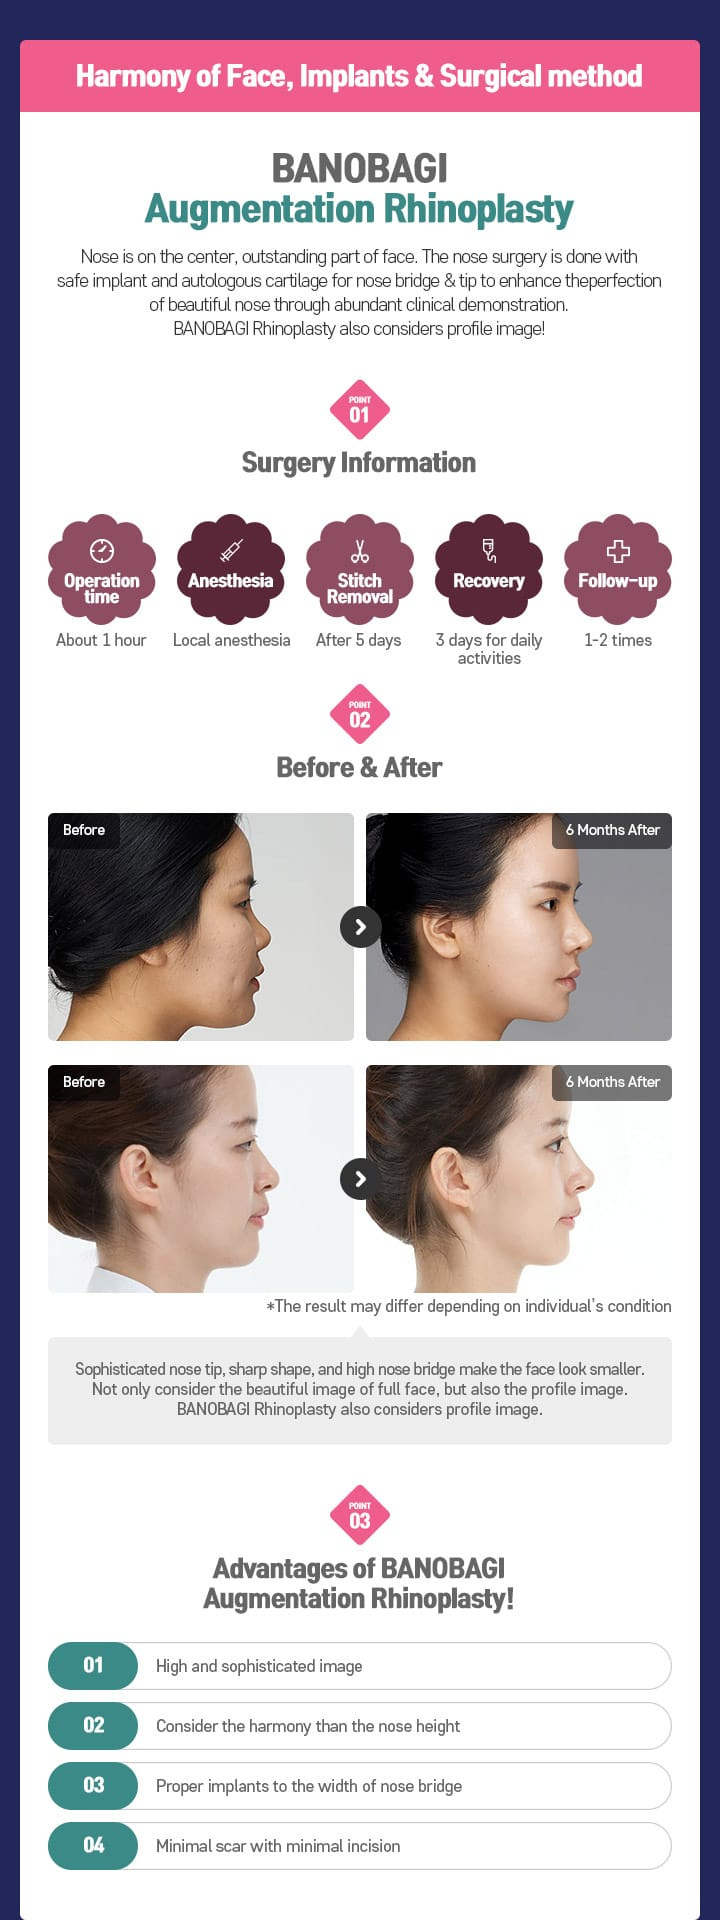 Harmony of Face, Implants & Surgical method